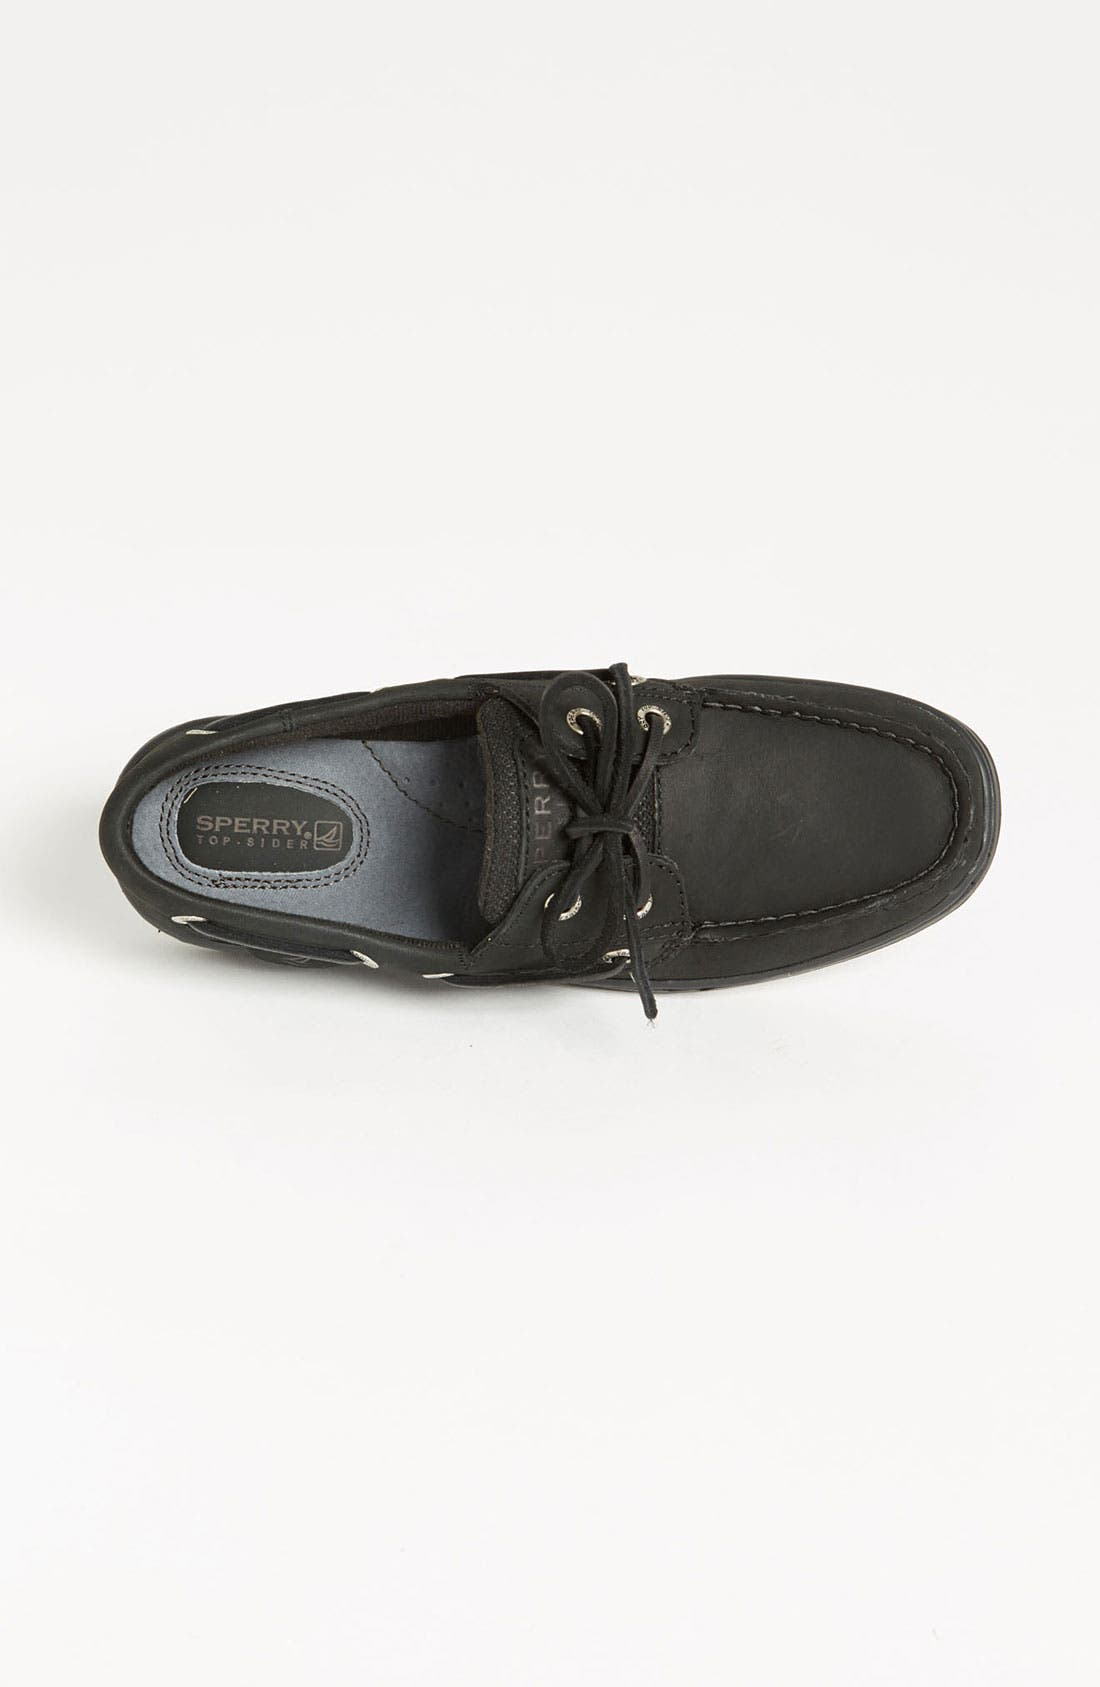 Top-Sider<sup>®</sup> 'Bluefish 2 Eye' Boat Shoe,                             Alternate thumbnail 4, color,                             001